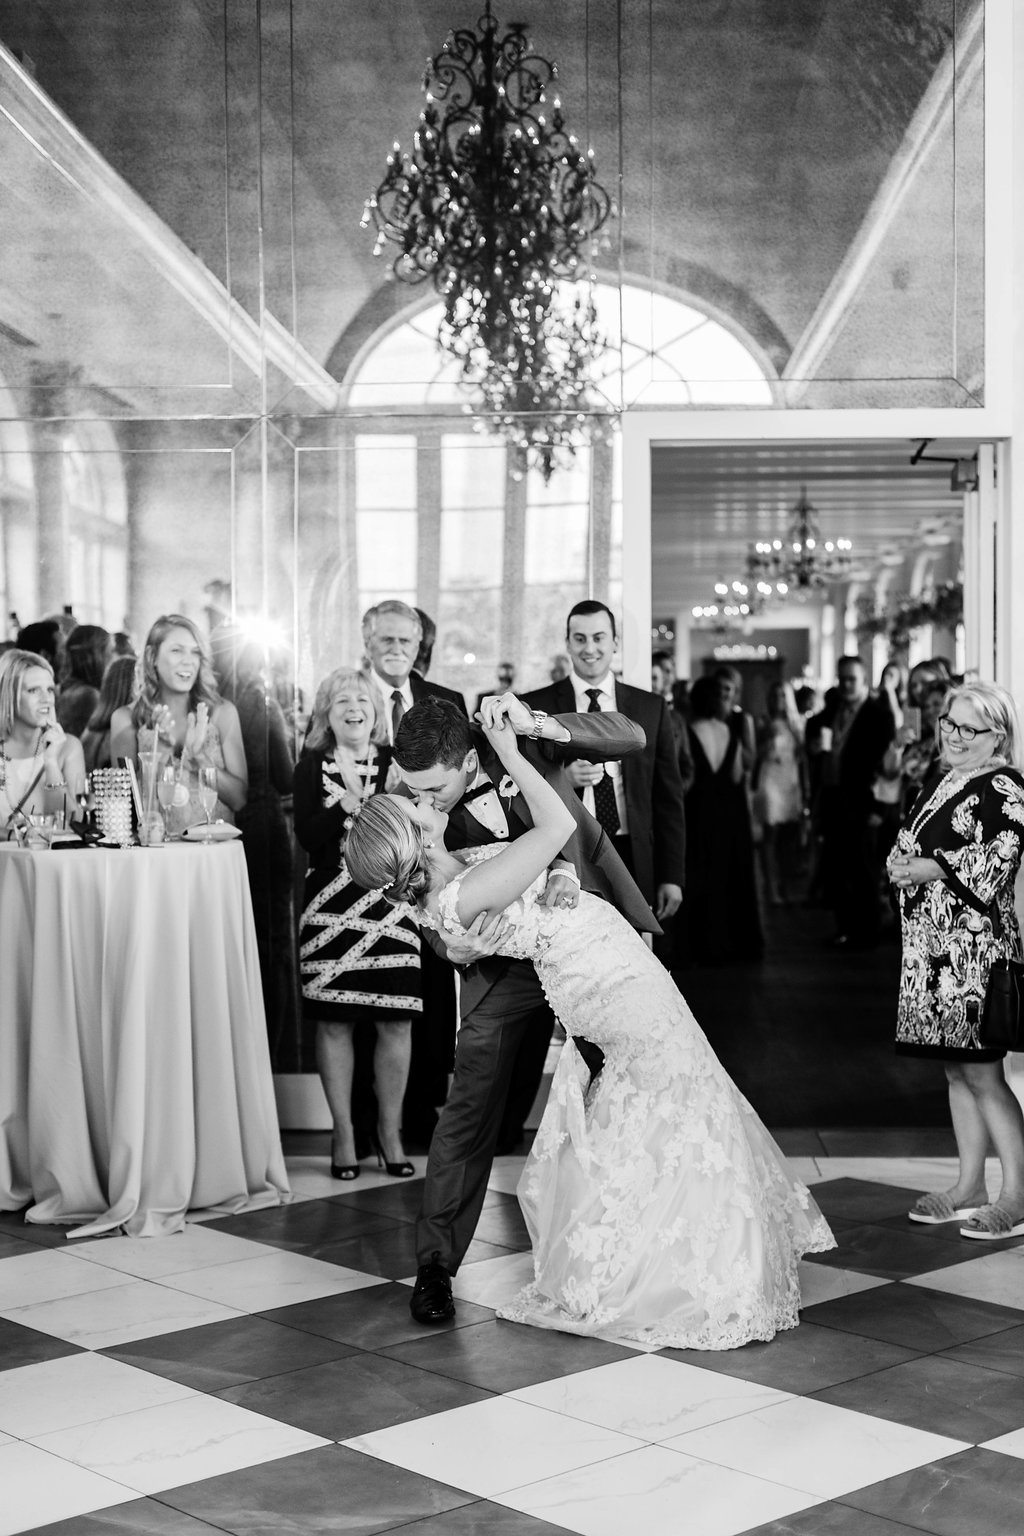 A Marche New Orleans Wedding - The Overwhelmed Bride Wedding Blog